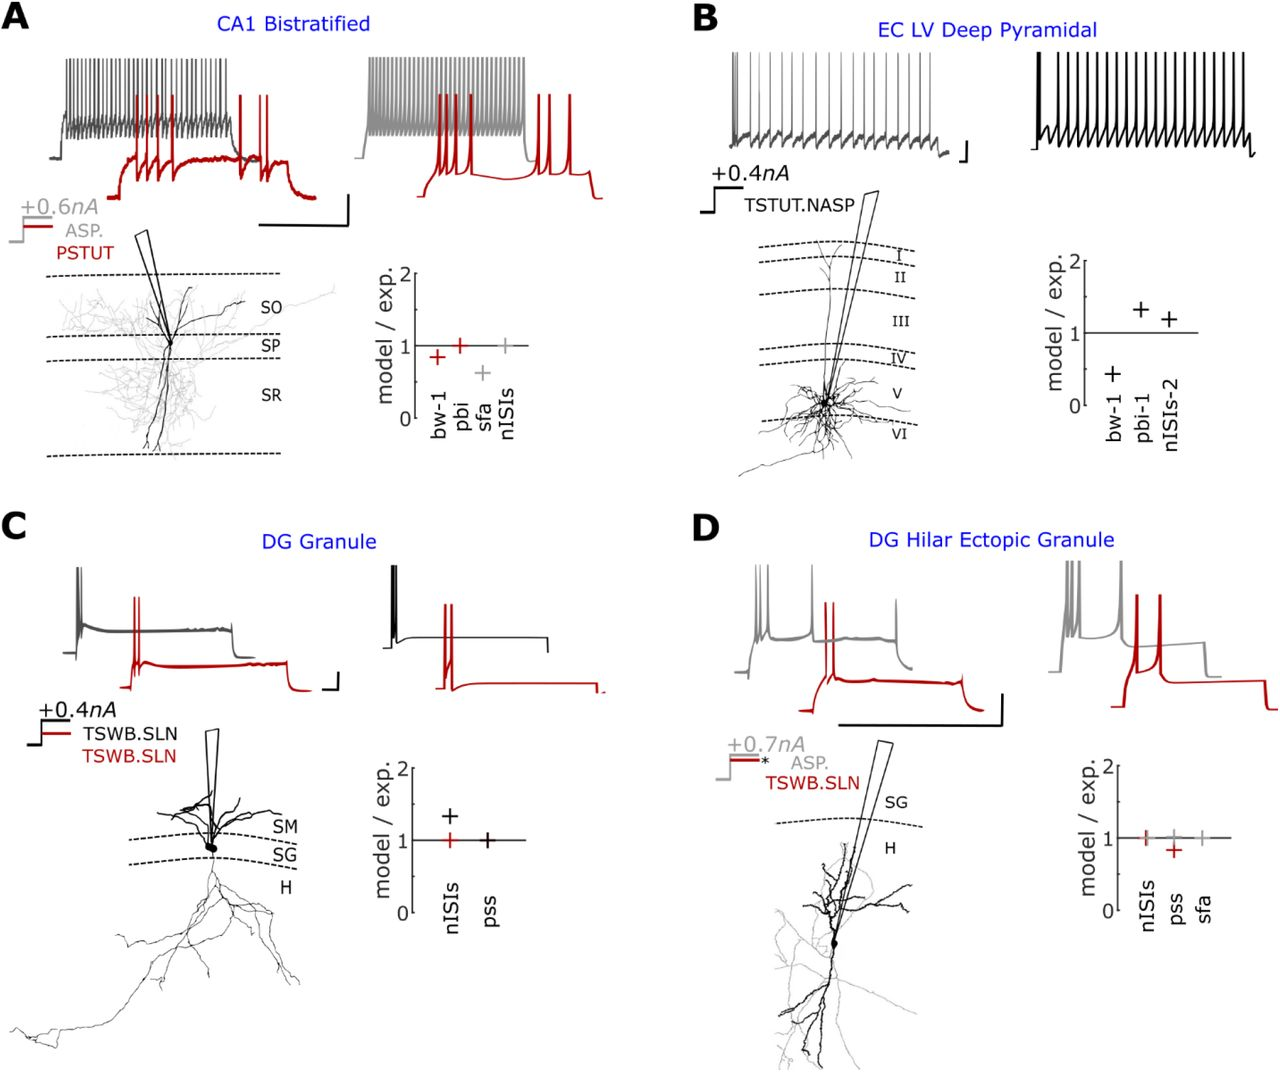 Simple models of quantitative firing phenotypes in hippocampal